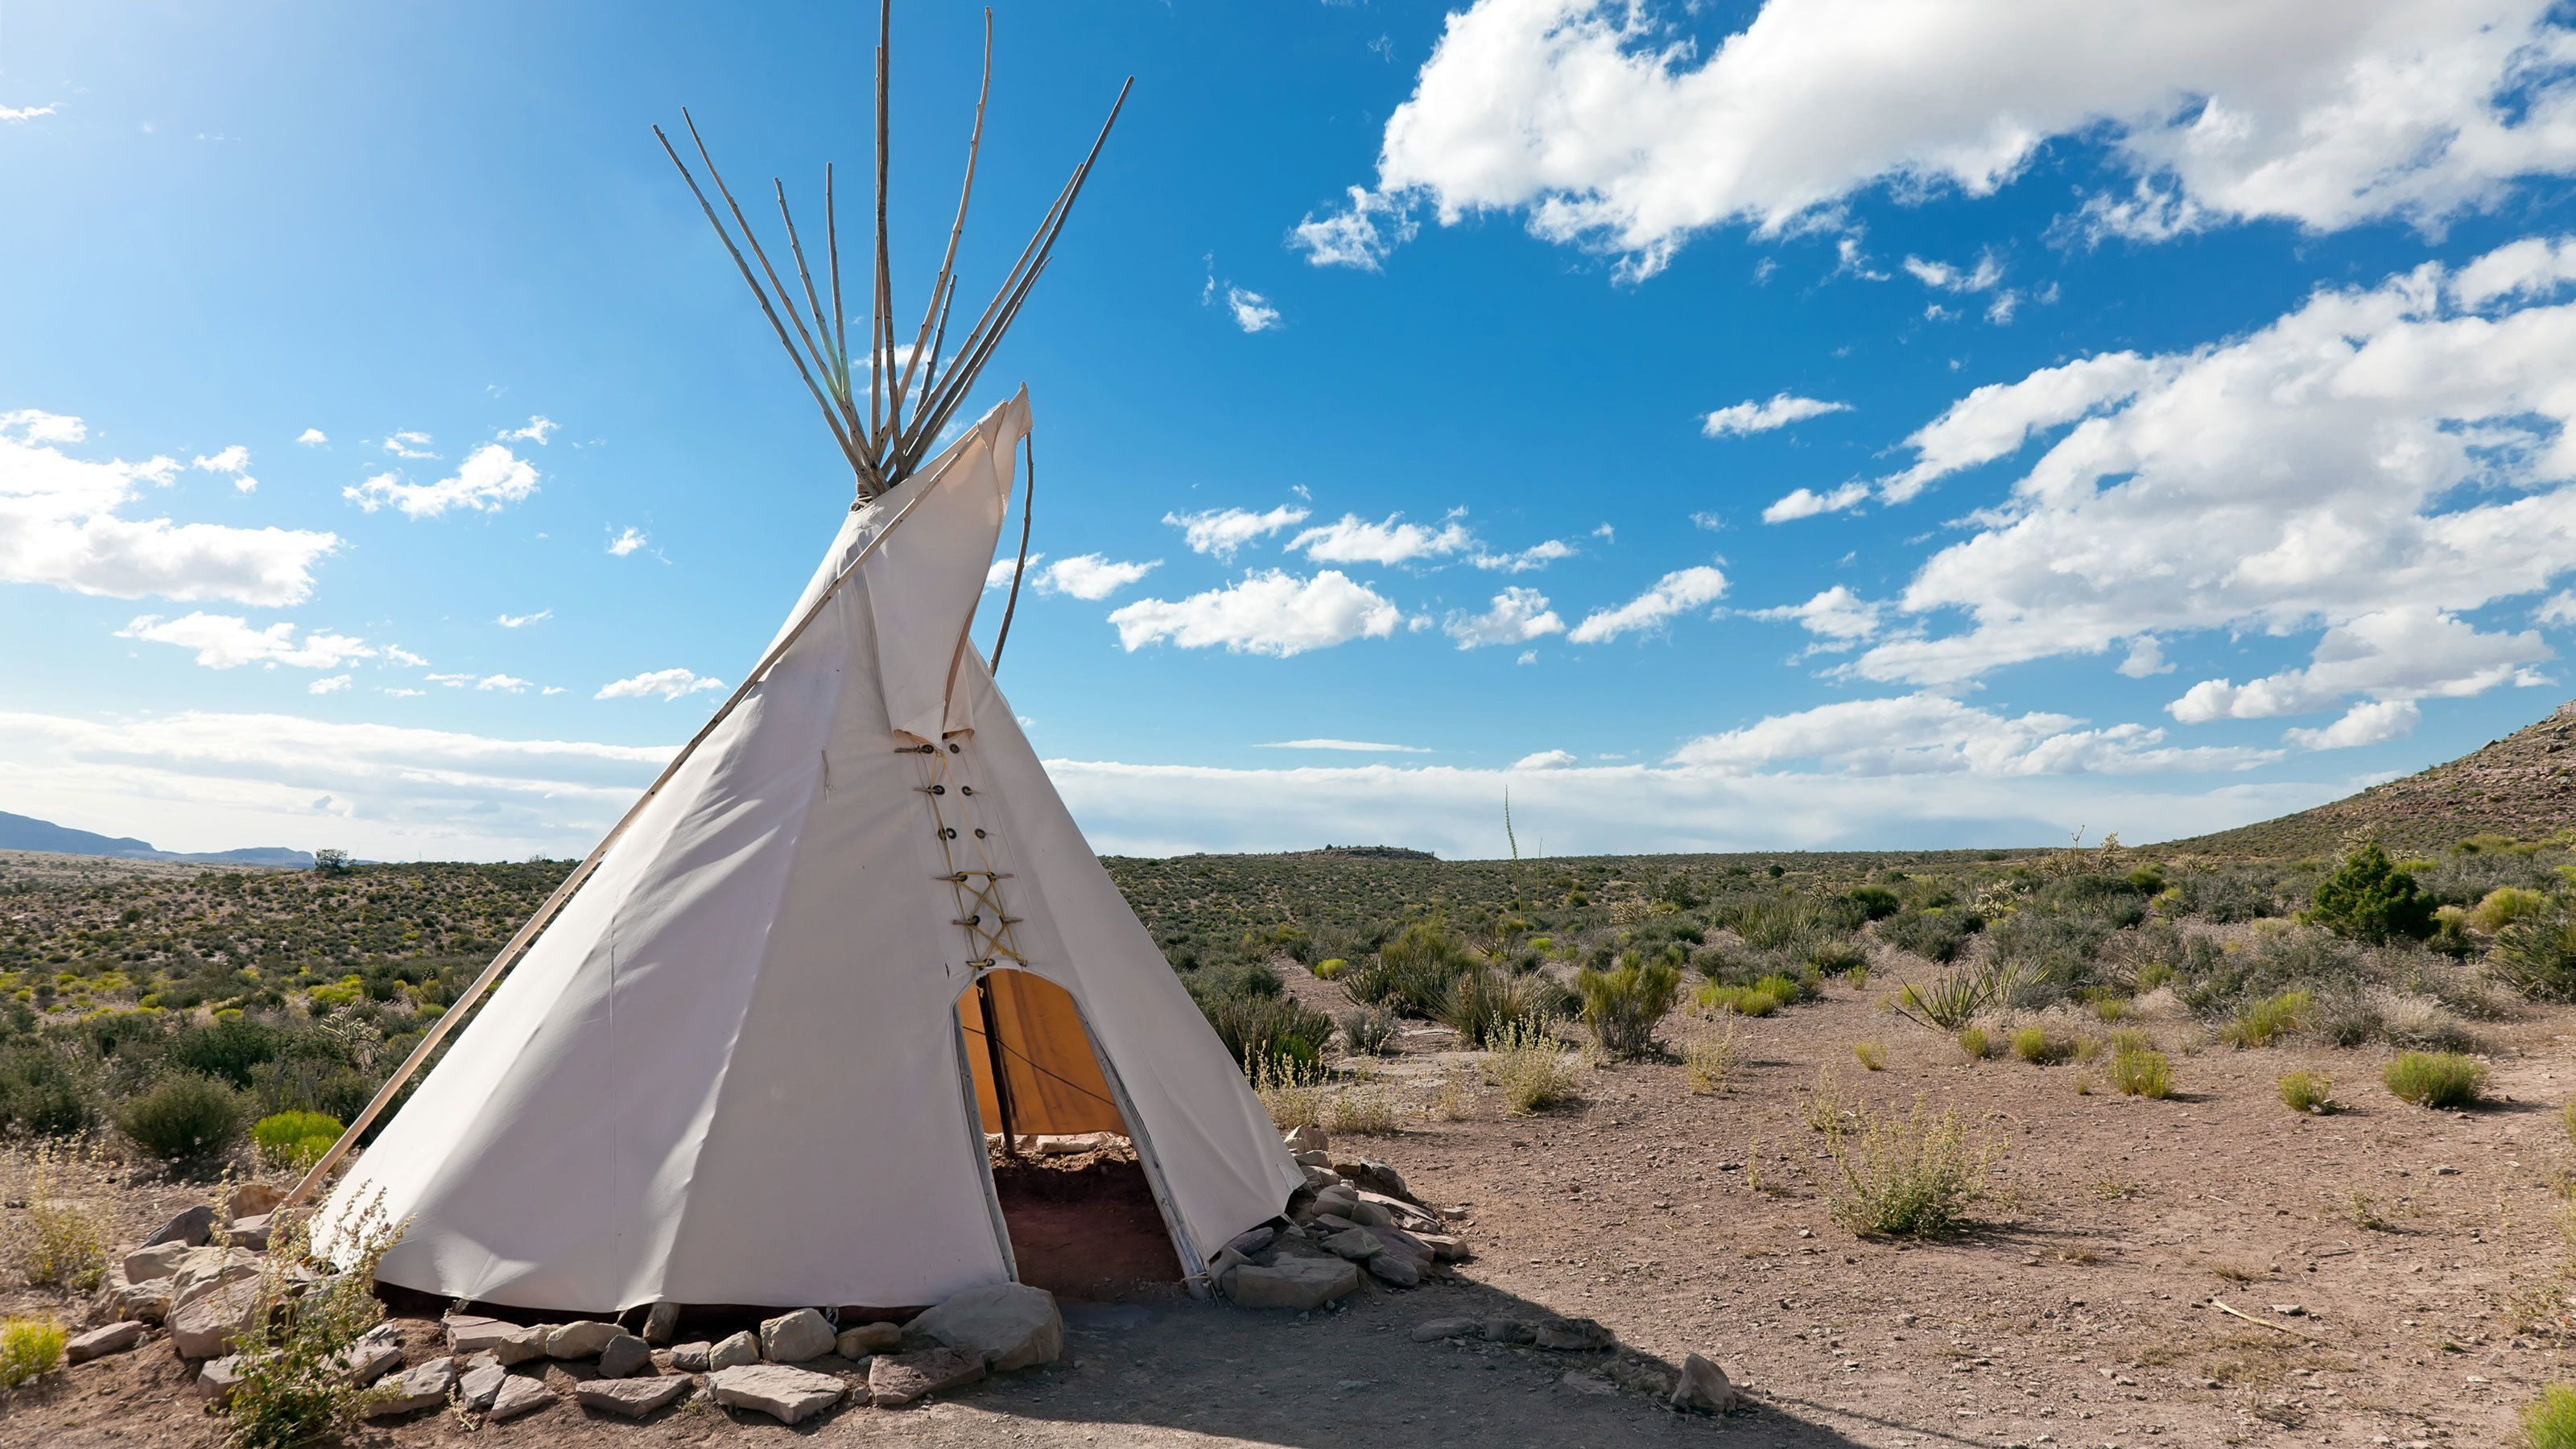 Tent seen on a sunny day in the Hualapai Indian Country